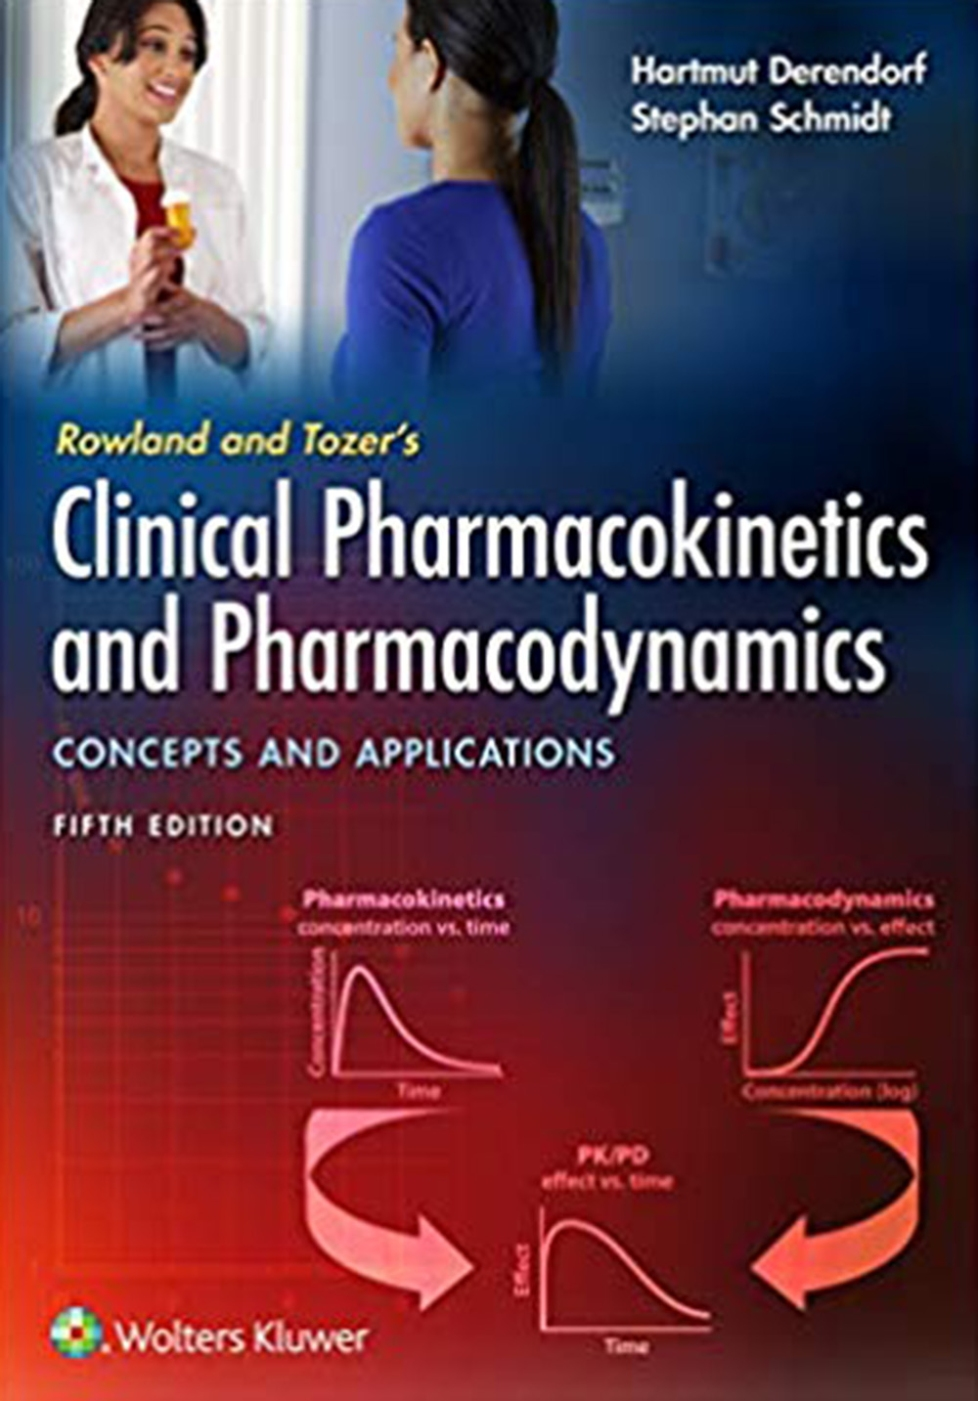 Rowland and Tozer's Clinical Pharmacokinetics and Pharmacodynamics: Concept and Applications